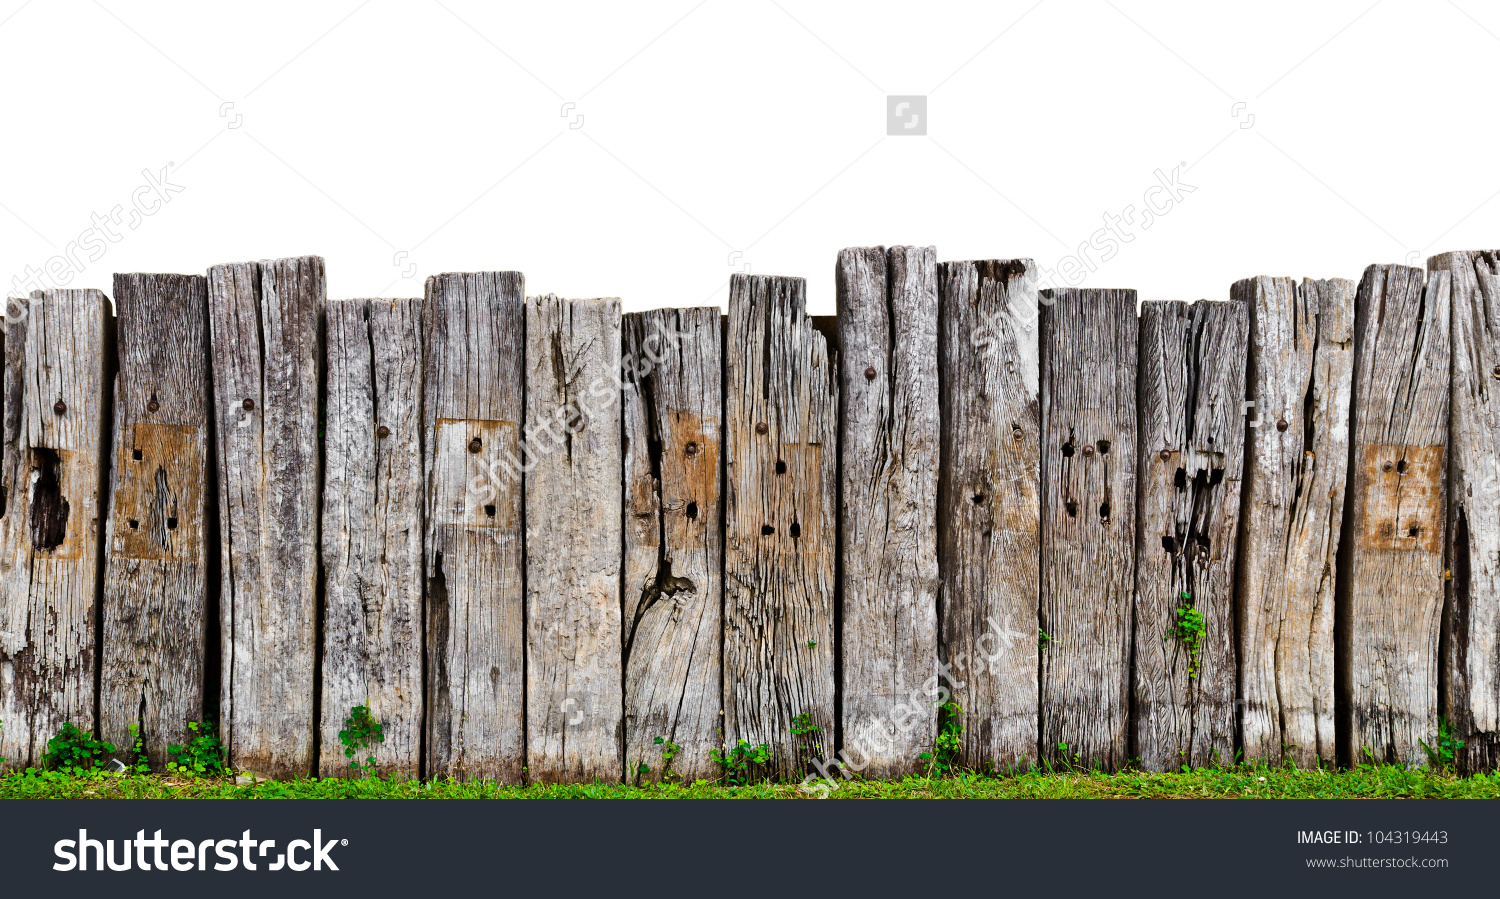 Old Wooden Fence Garden Plant Stock Photo 104319443.